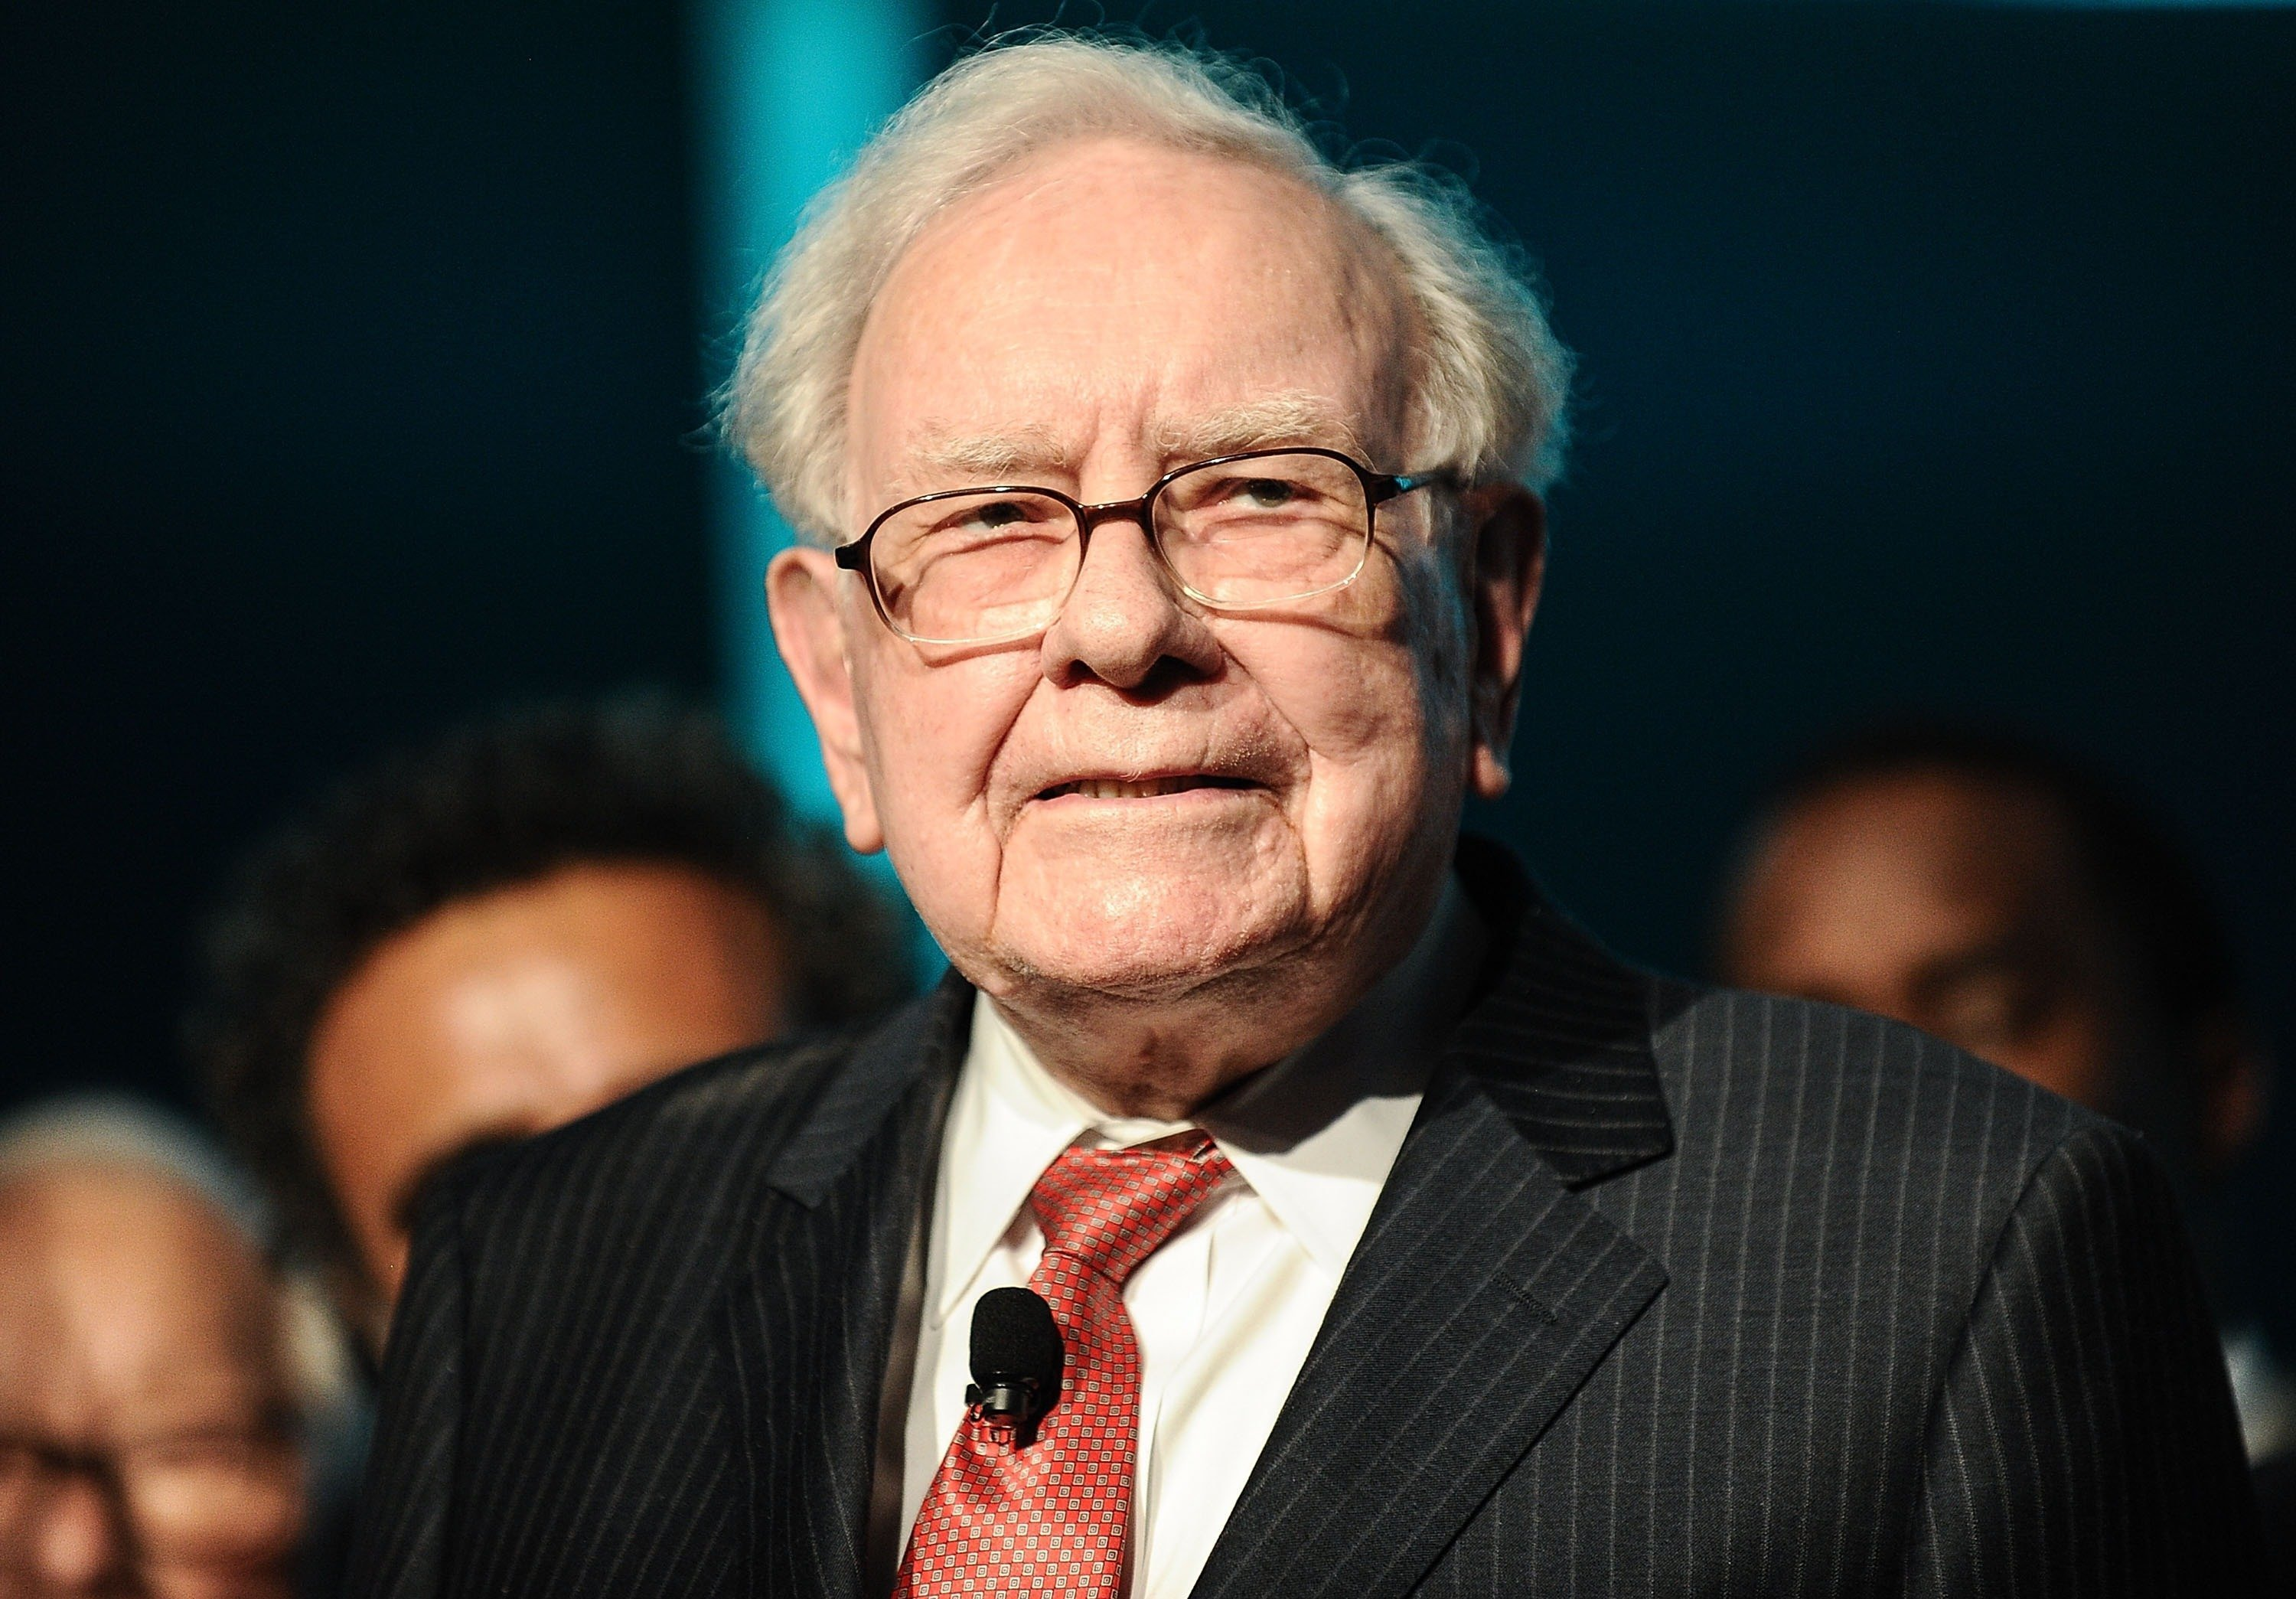 Famed investor Warren Buffett has urged states to stop relying on high-risk, high-fee alternative investments, which he calle